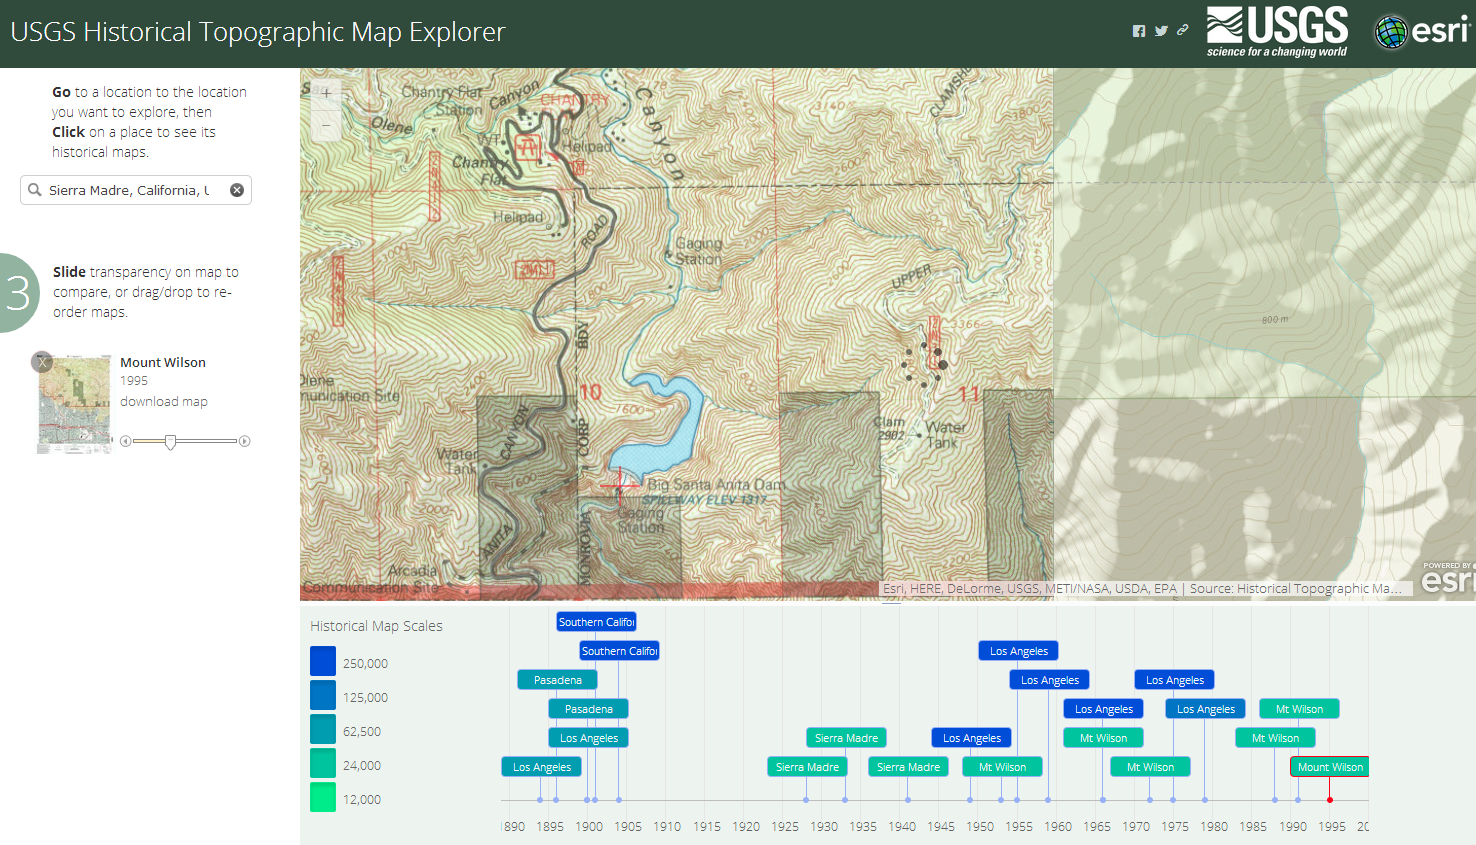 WiSAR and GIS Blog: USGS Historical Topographic Map Explorer for